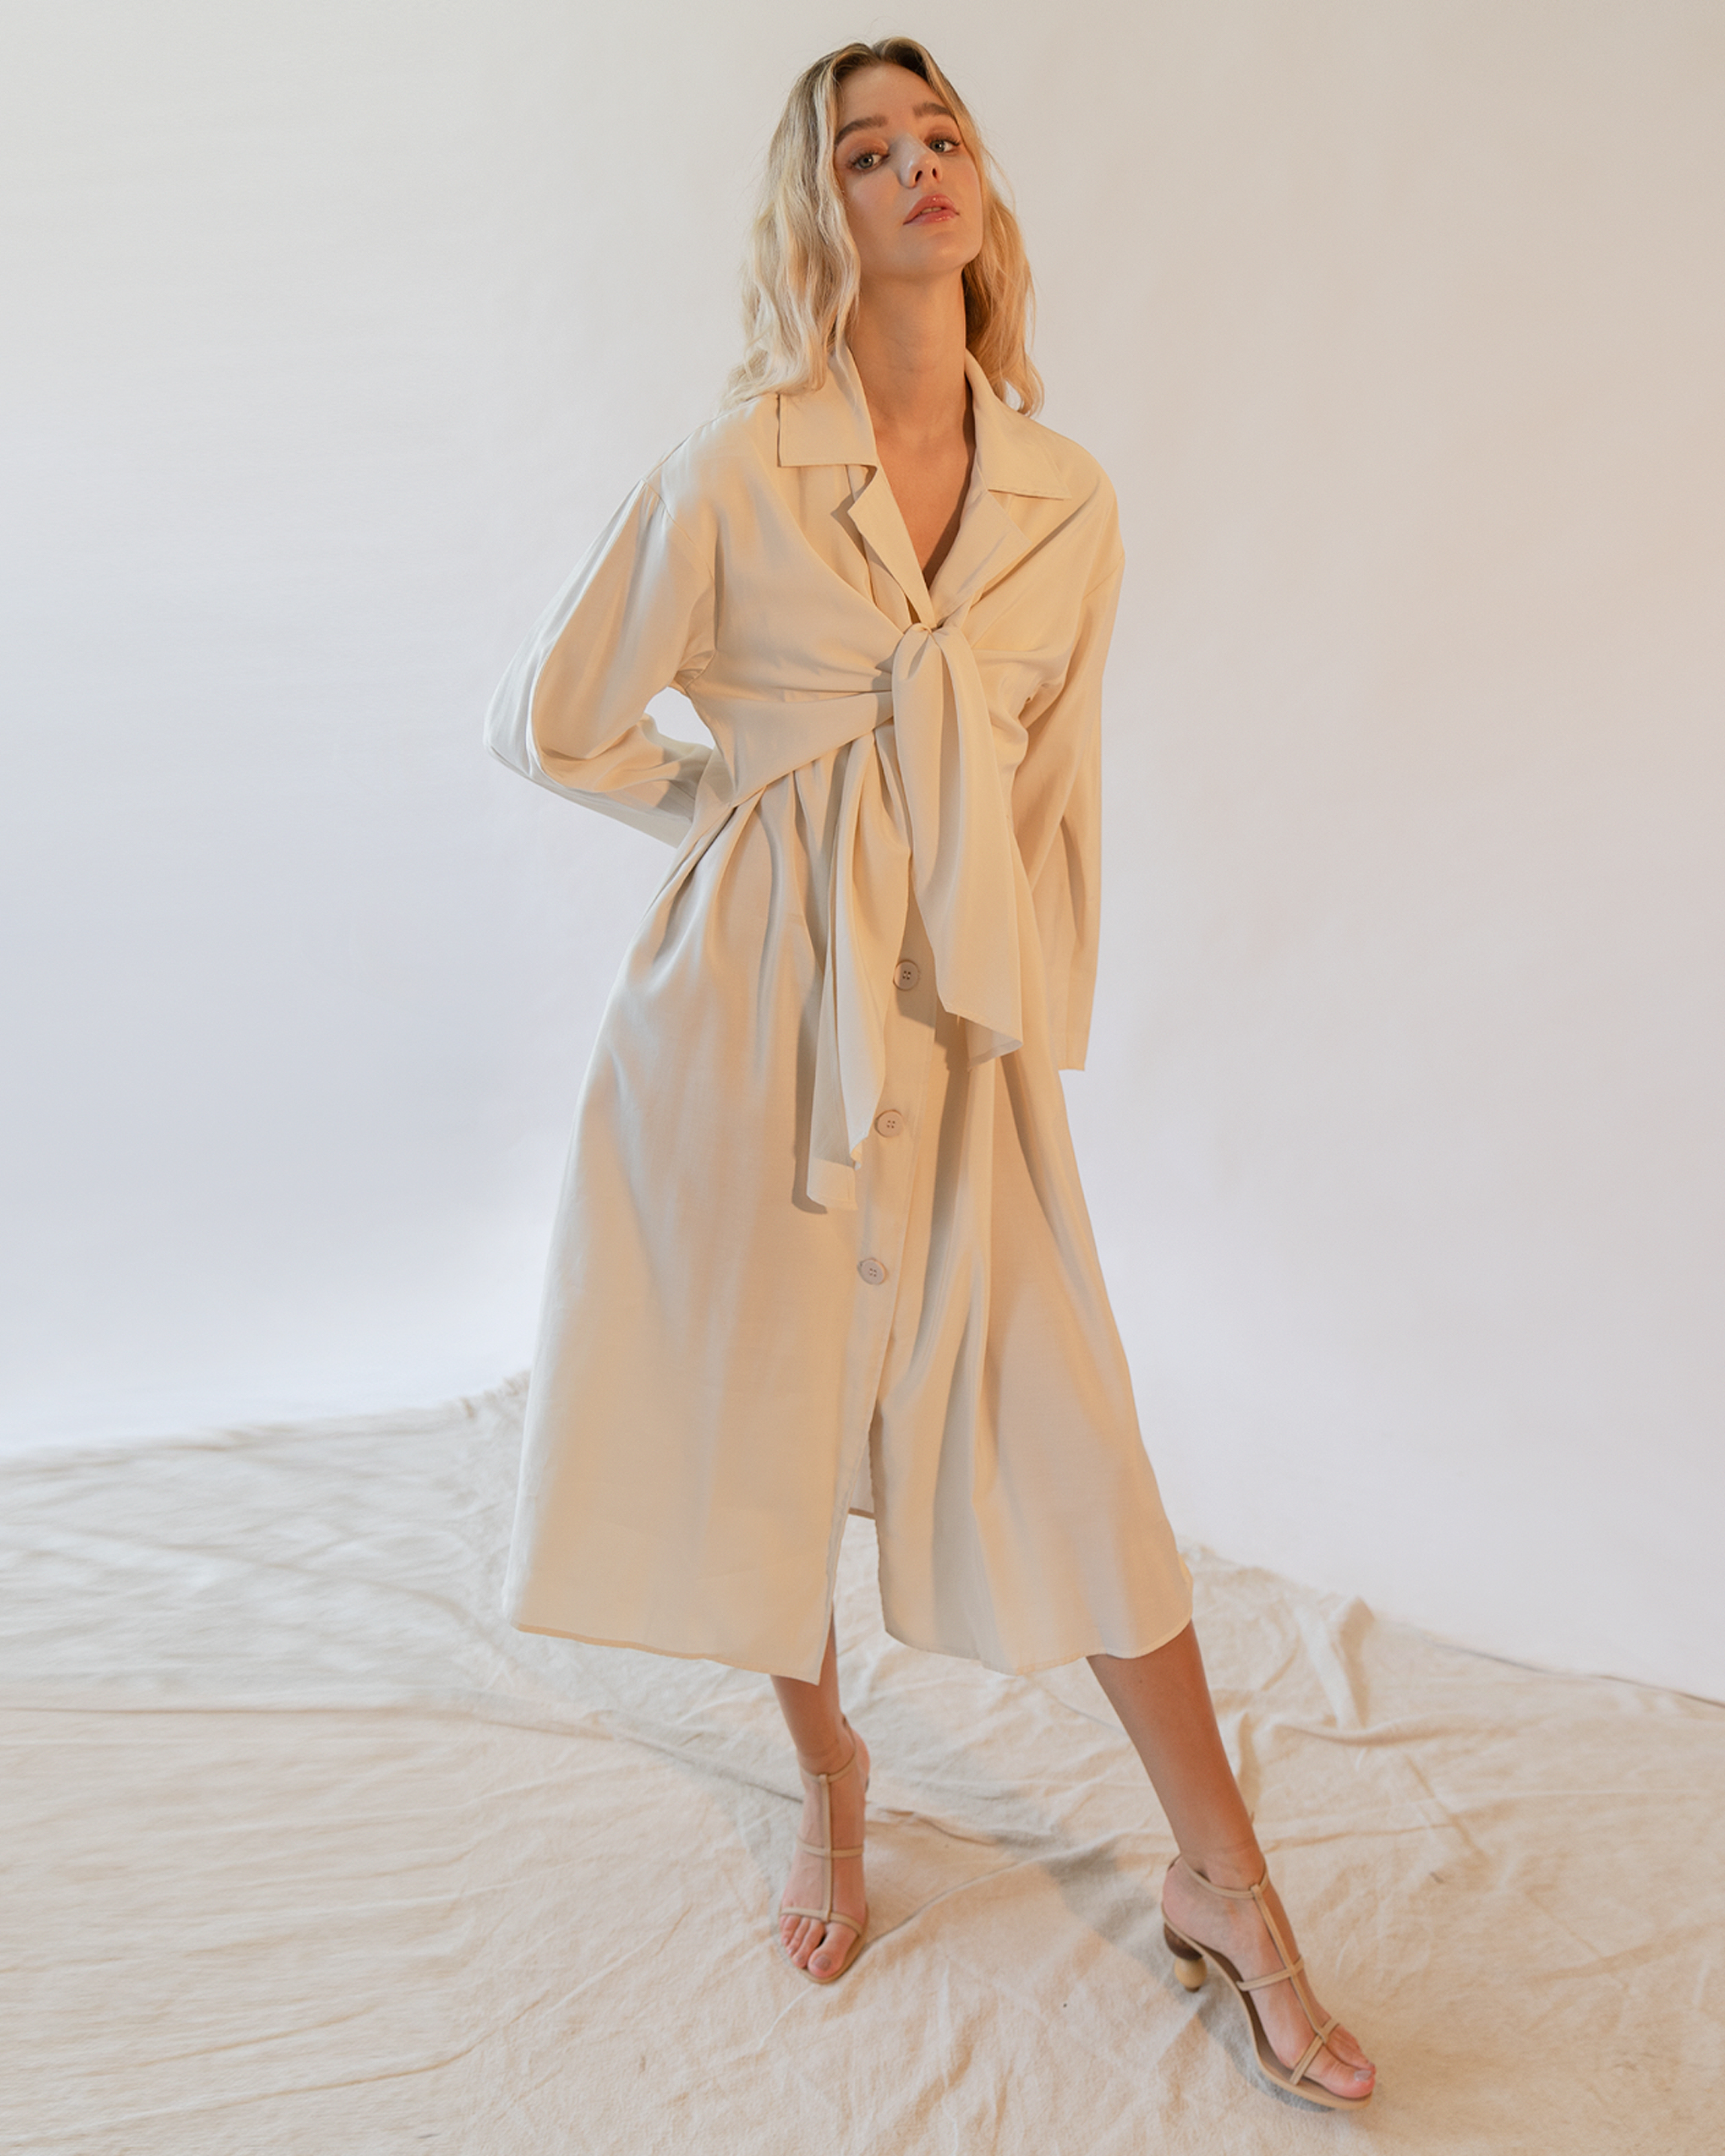 A women is wearing a cream tie front trench coat.